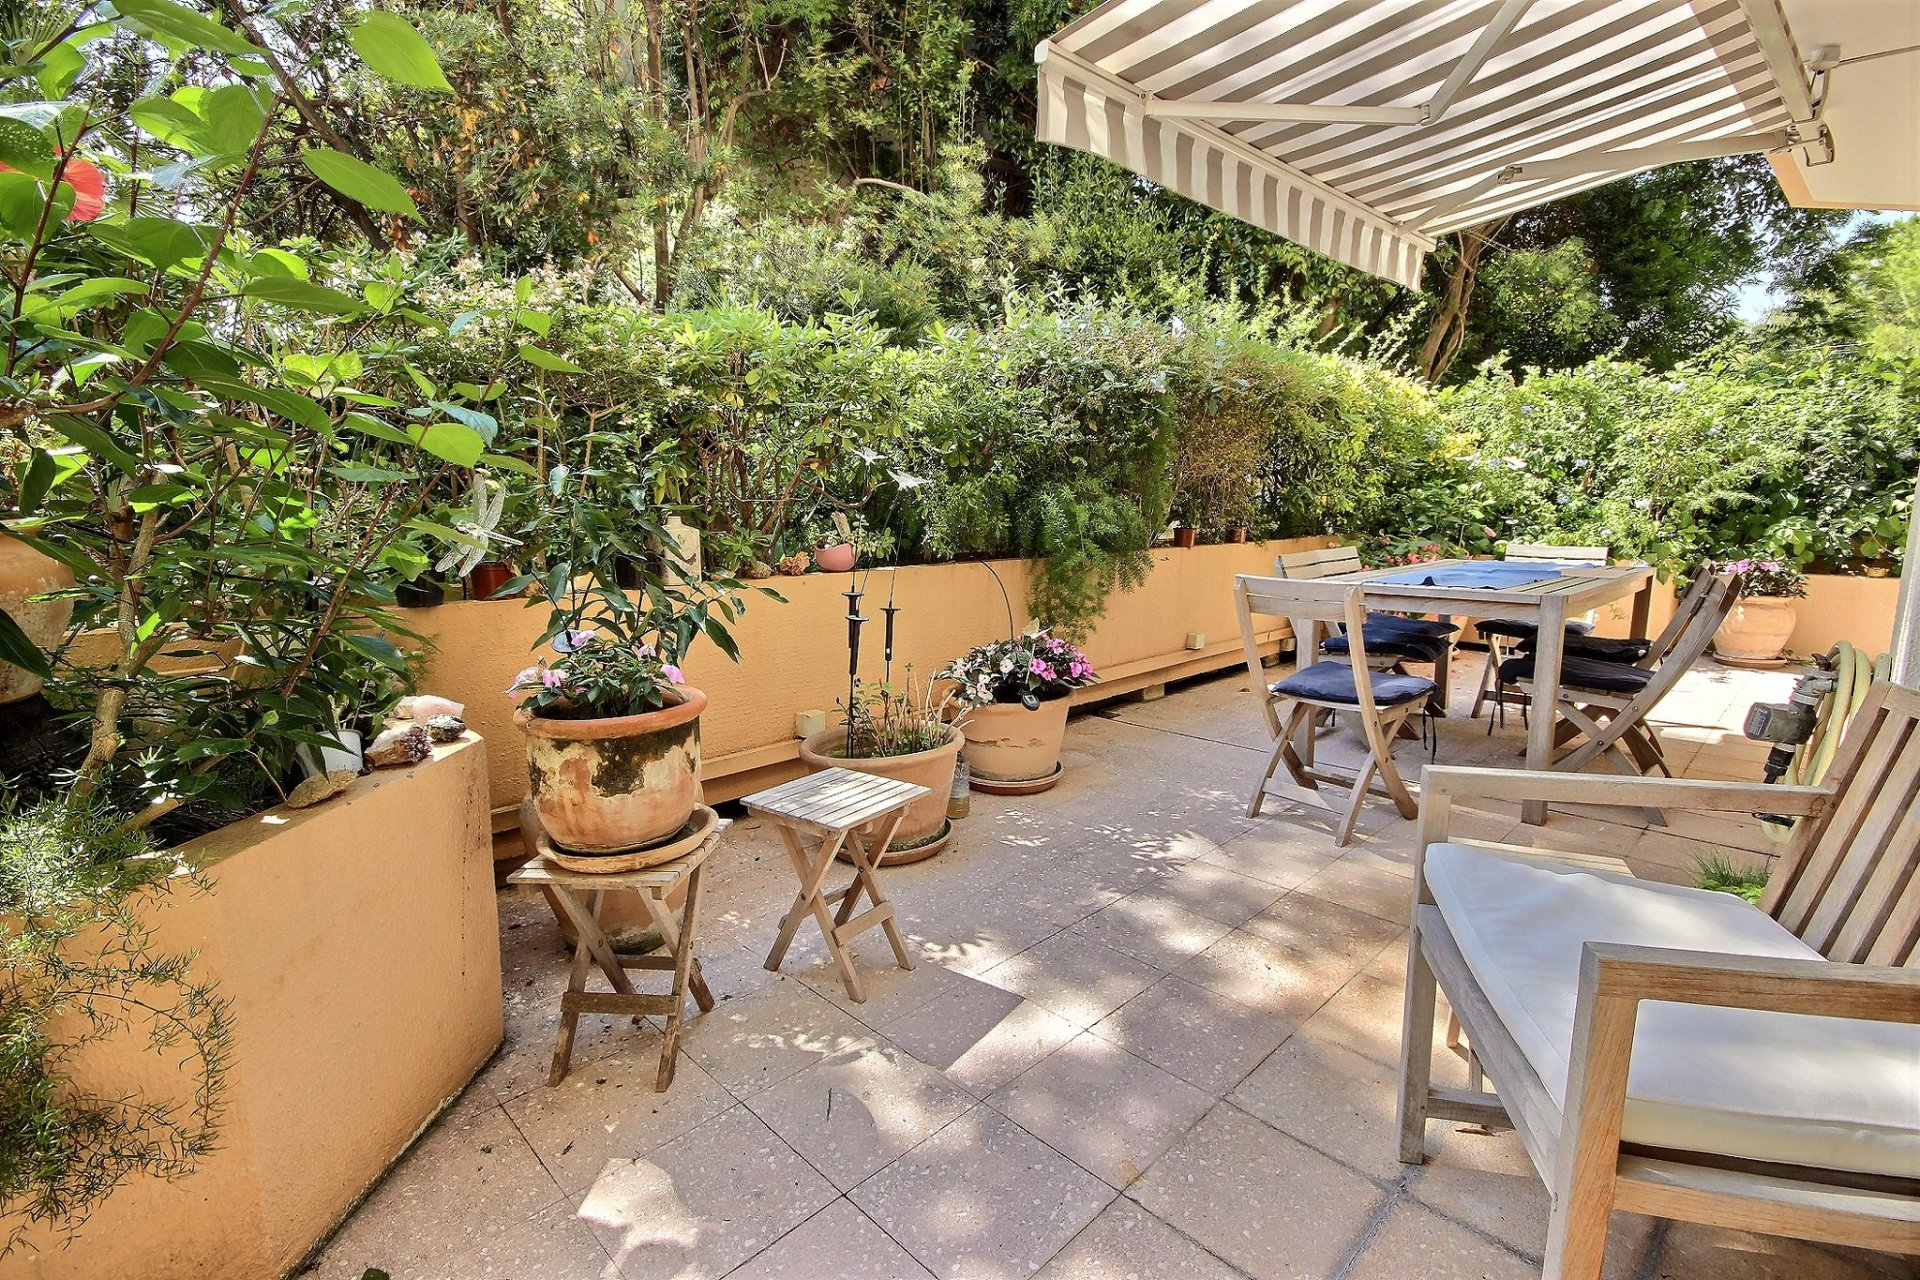 Property for sale in Cannes Palm Beach with swimming pool